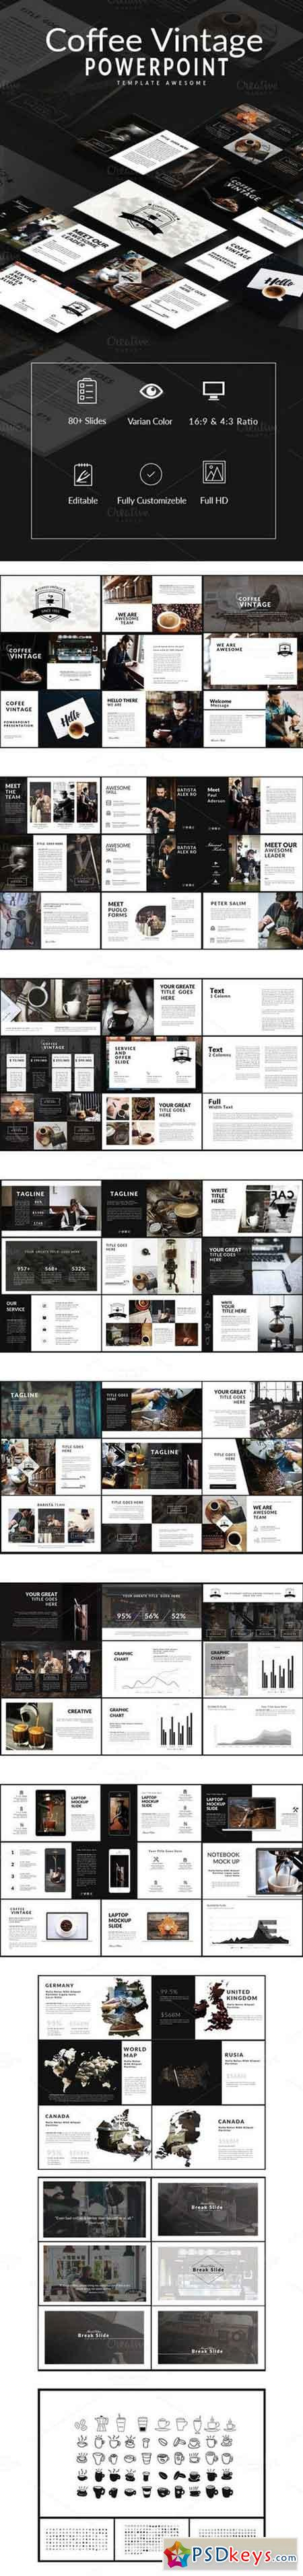 Coffee Vintage Powerpoint Template 874295 Free Download Photoshop